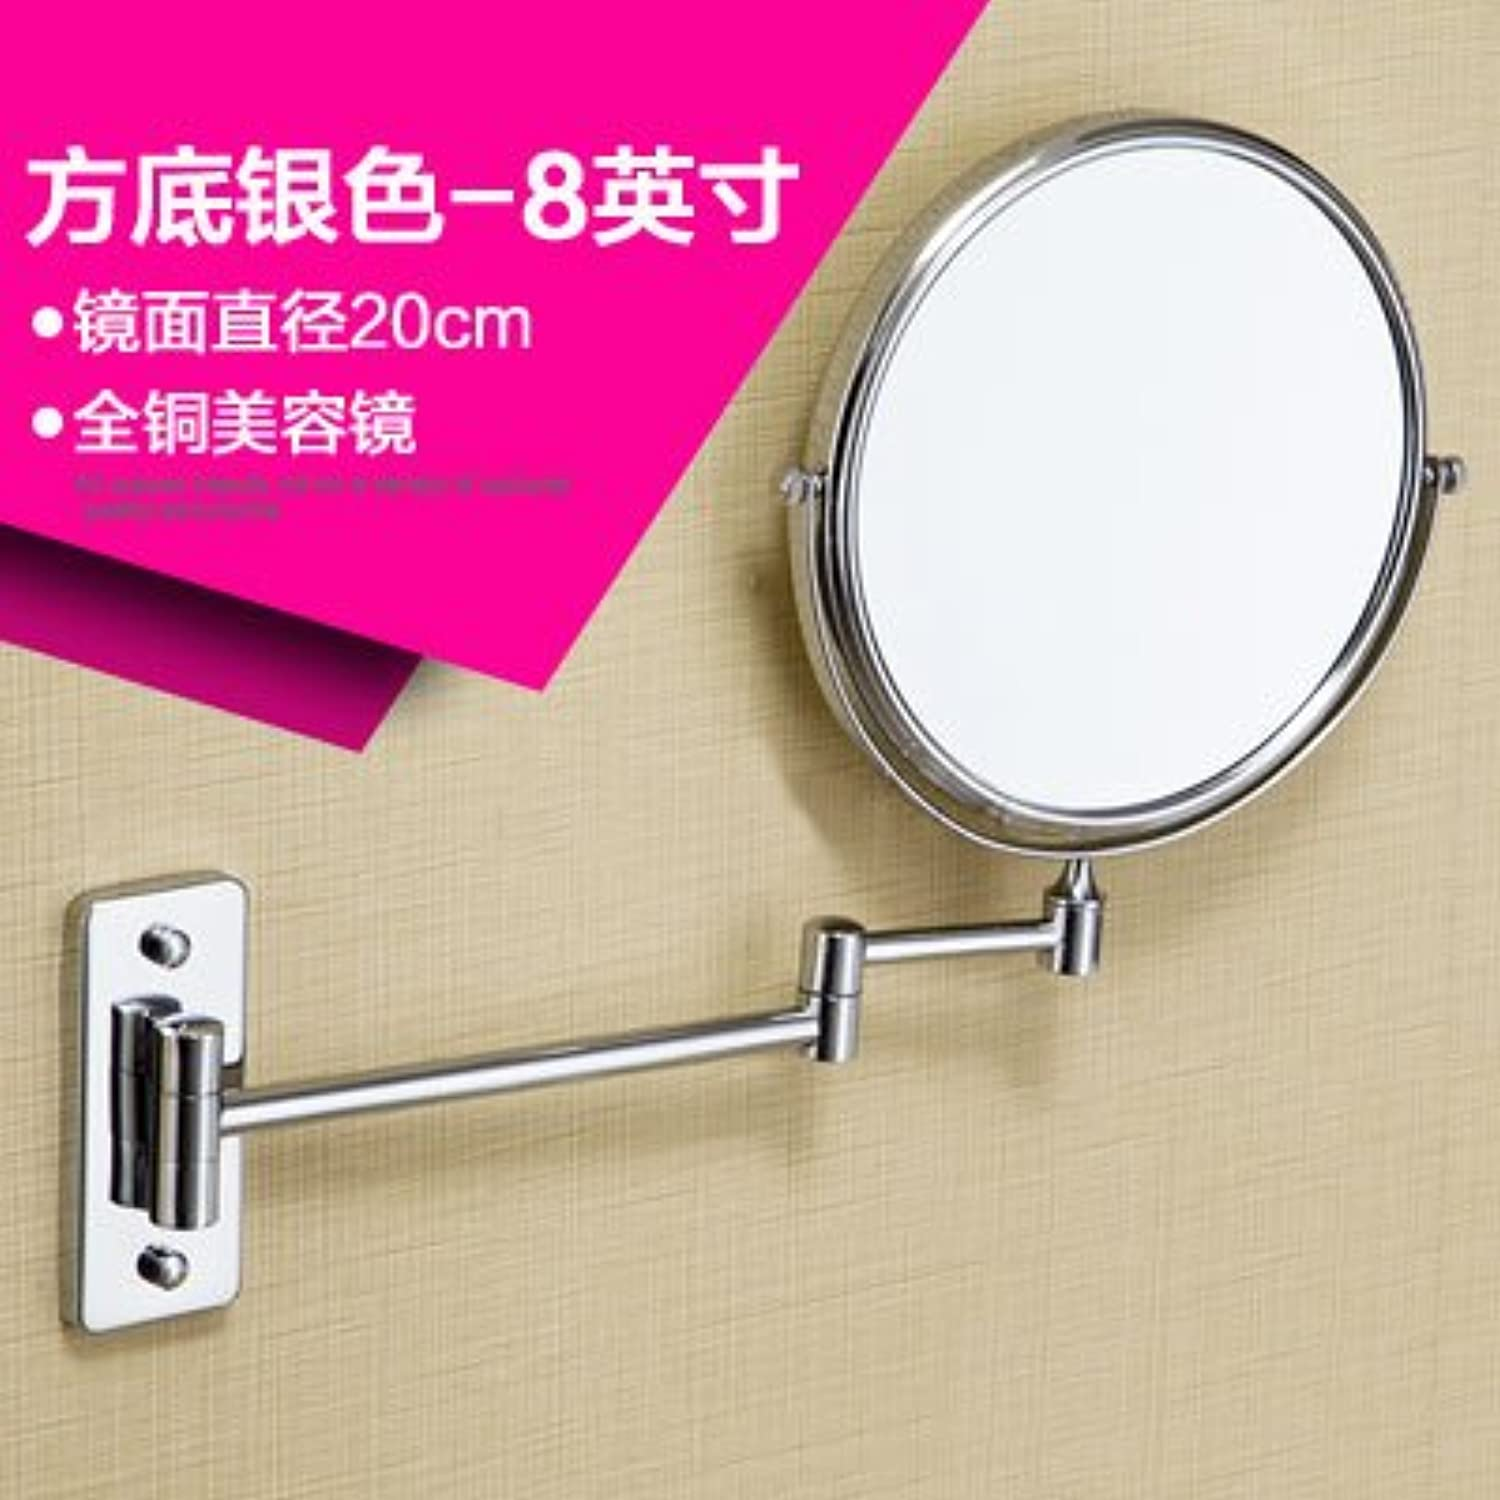 Copper wall-mounted bathroom two-sided mirror bathroom redary shaving mirror mirror wall mount makeup mirror Silver at the end of 8-inch diameter 20cm